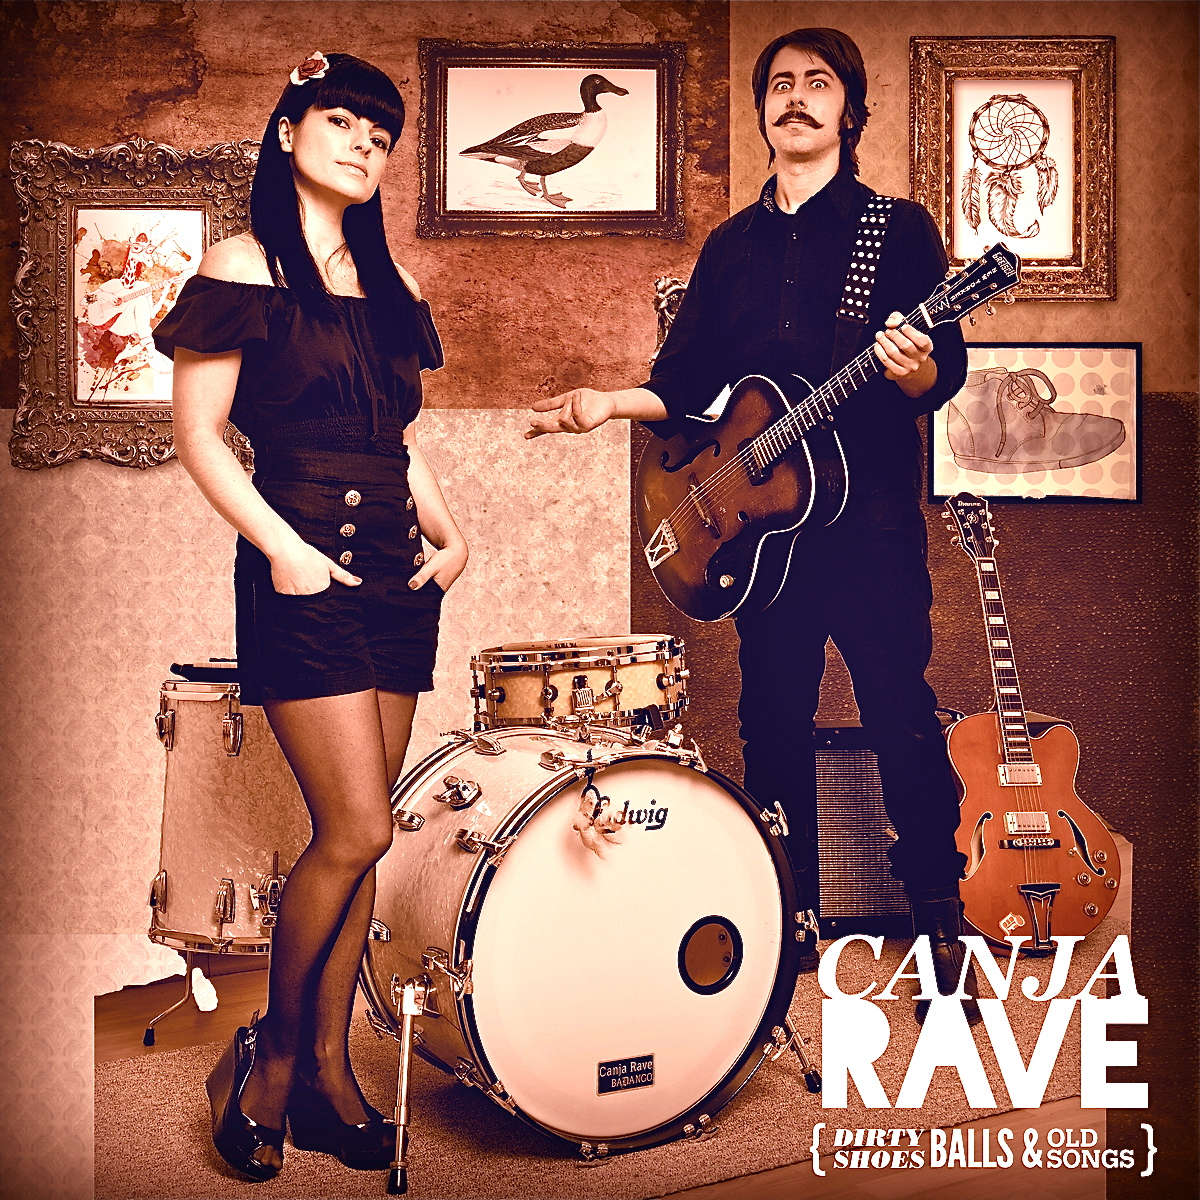 Dirty Shoes, Balls and Old Songs  - Canja Rave